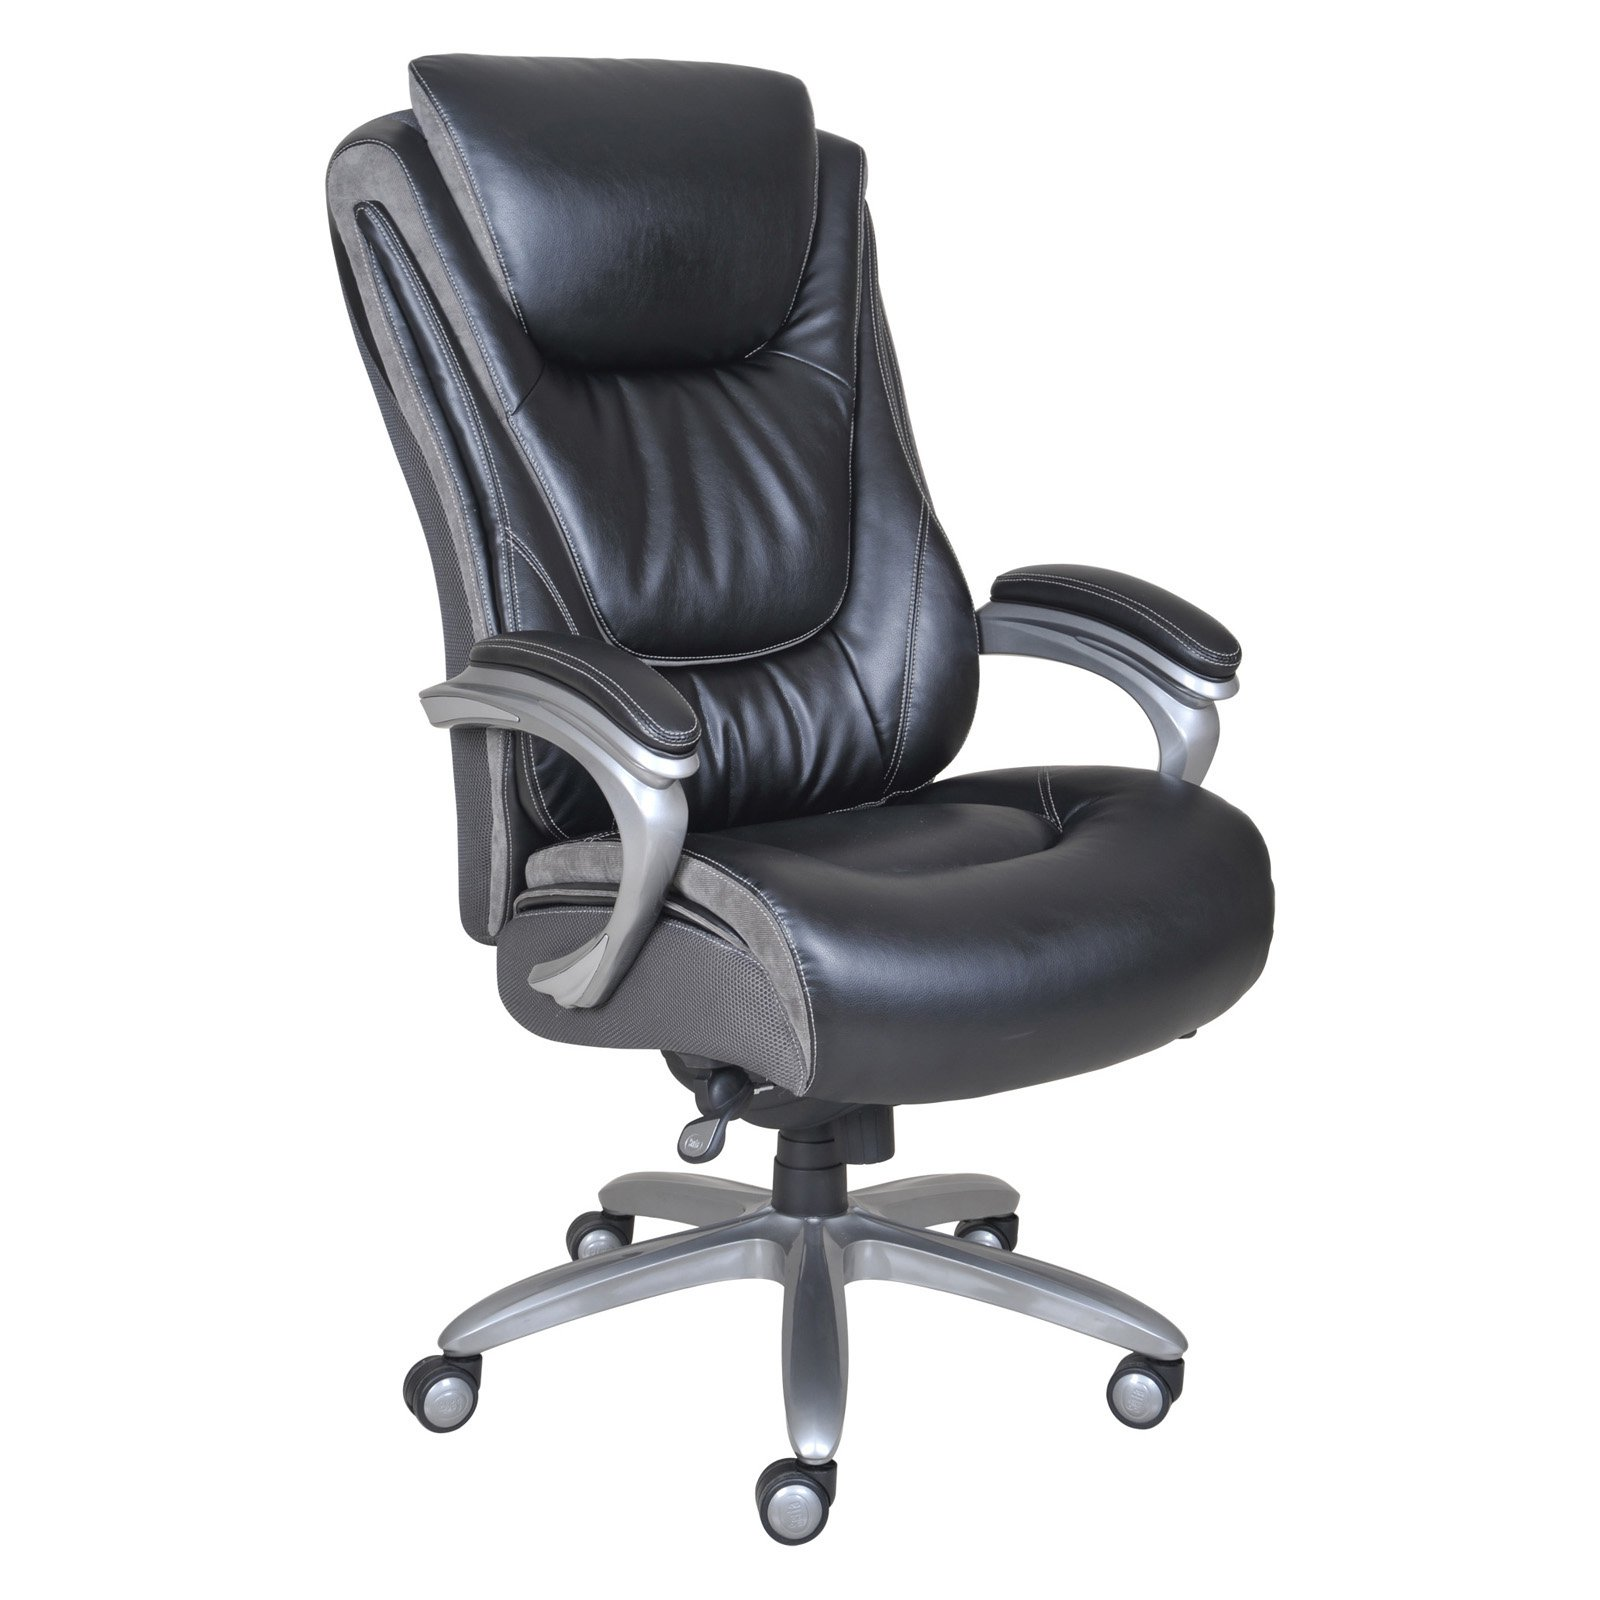 Serta Big and Tall Smart Layers Executive Office Chair, Blissfully